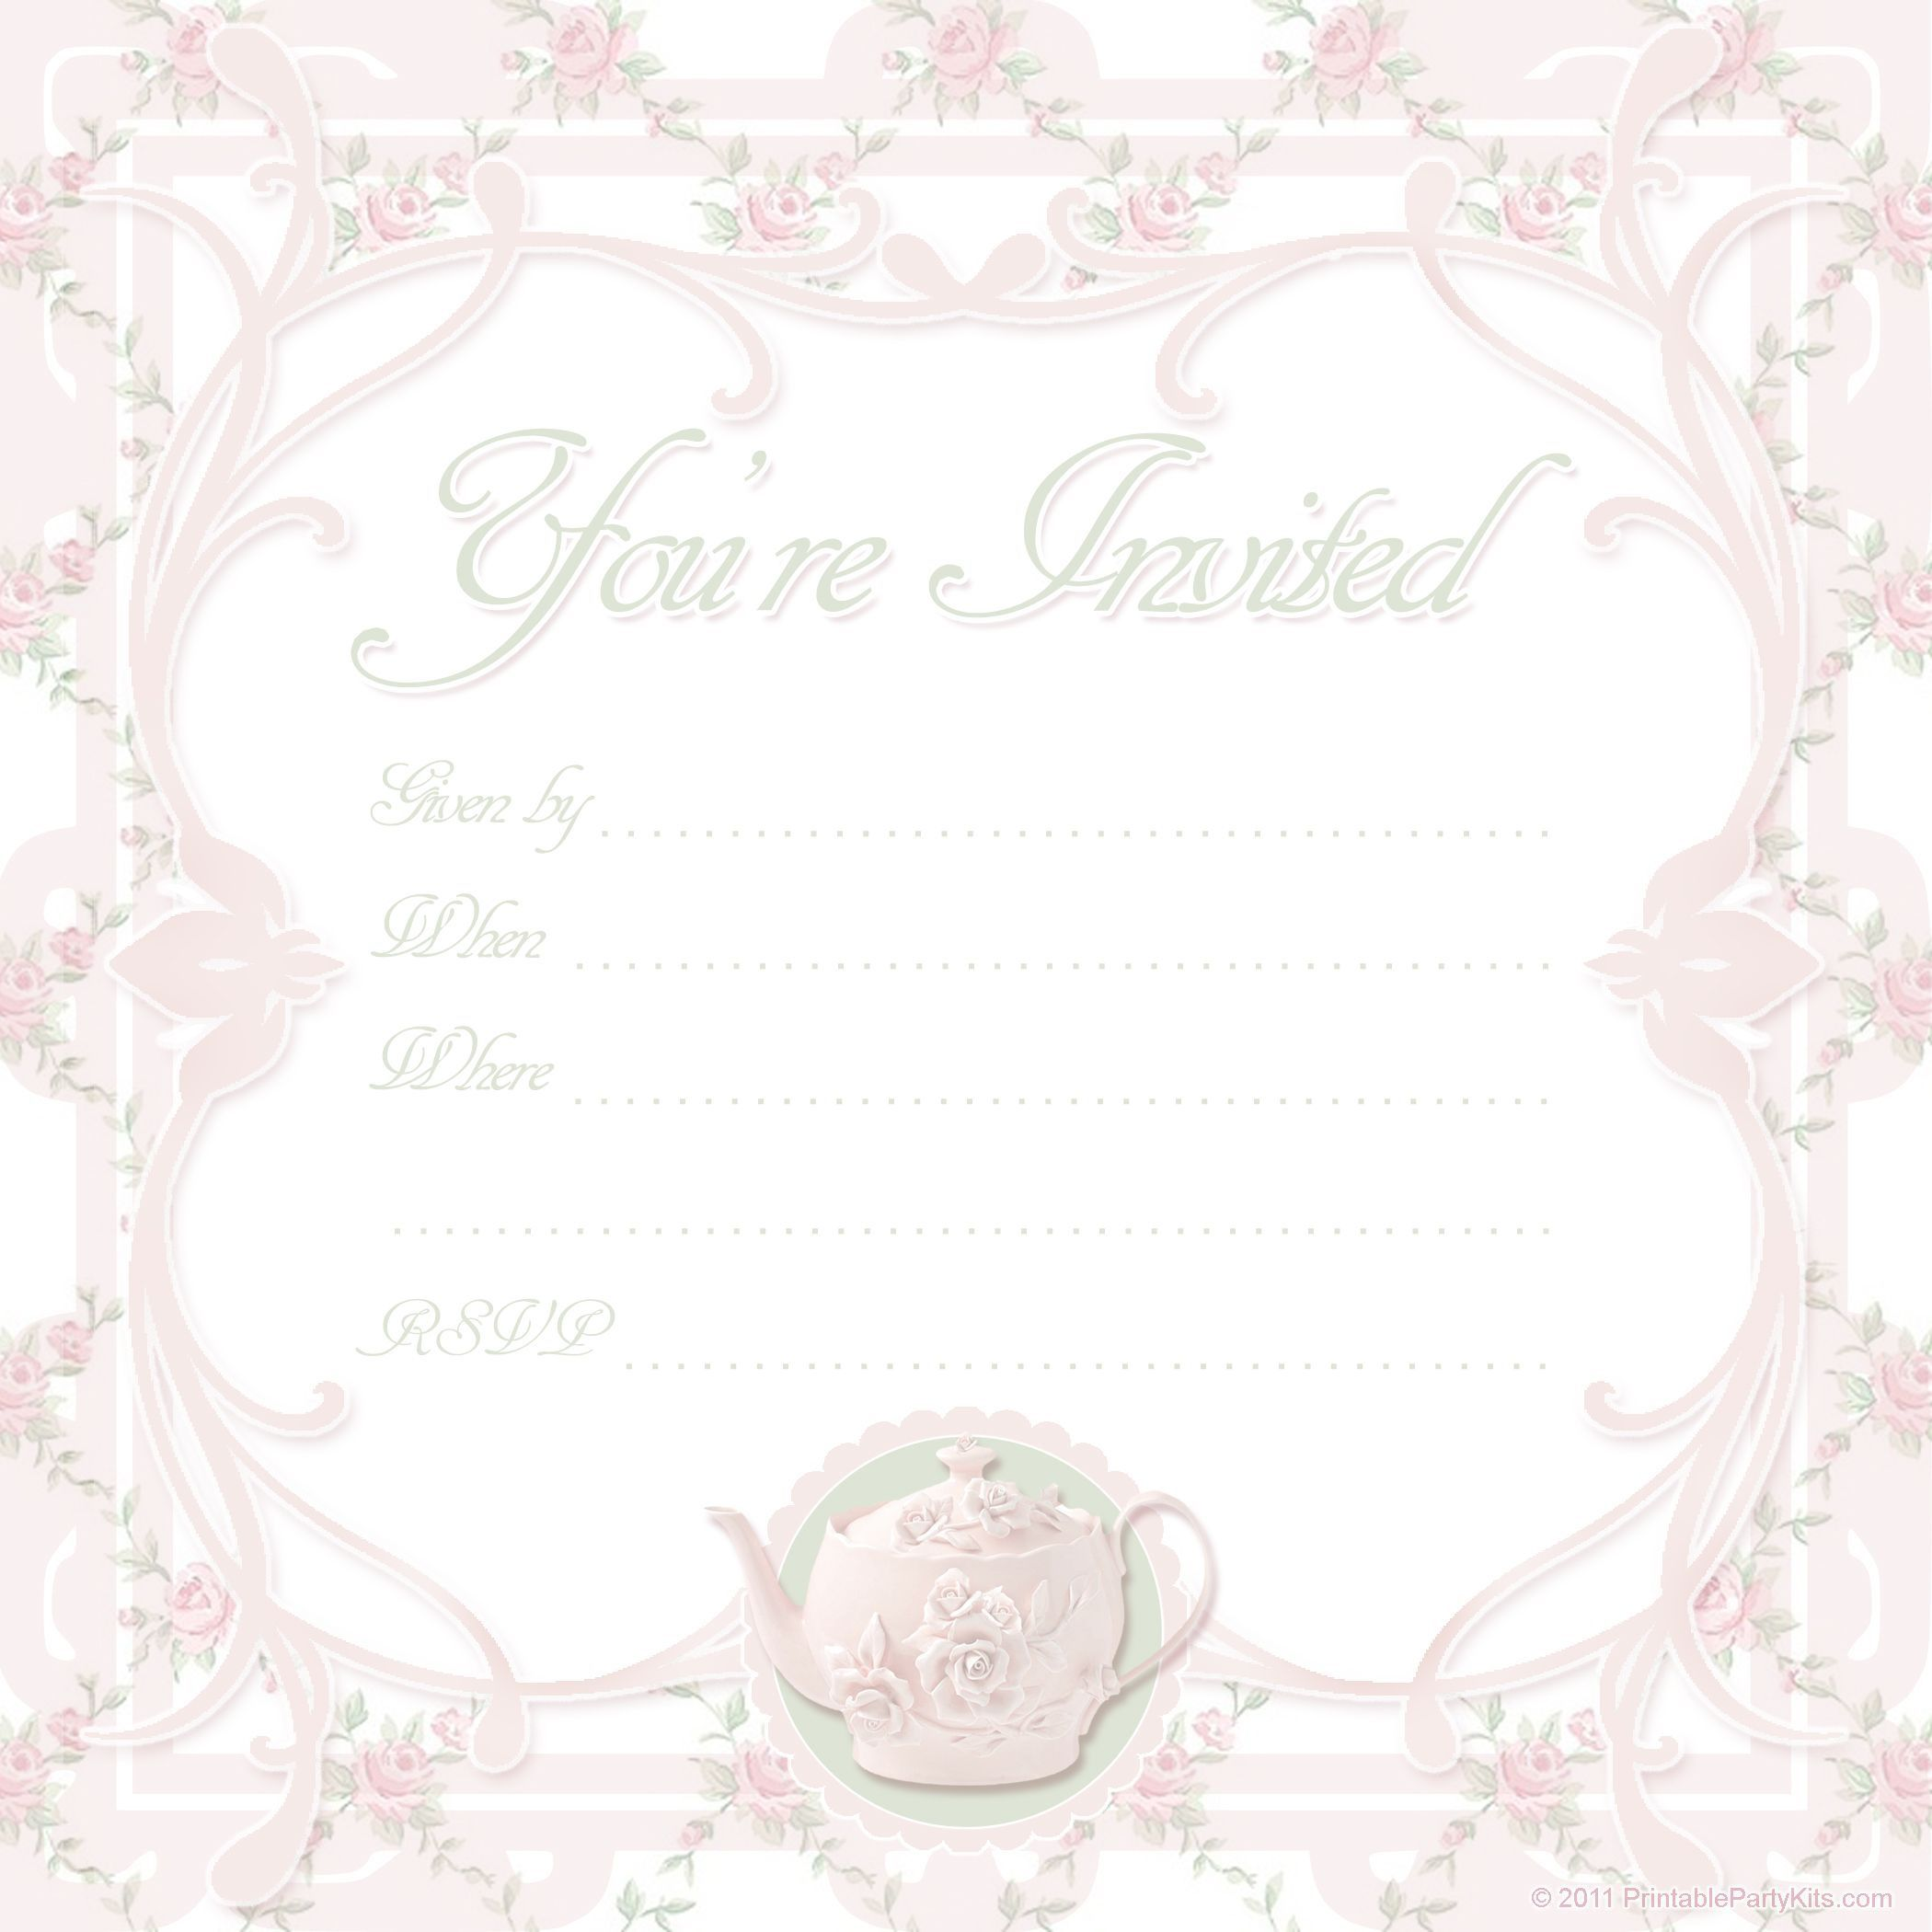 000 Awesome Tea Party Invitation Template High Def  Online LetterFull